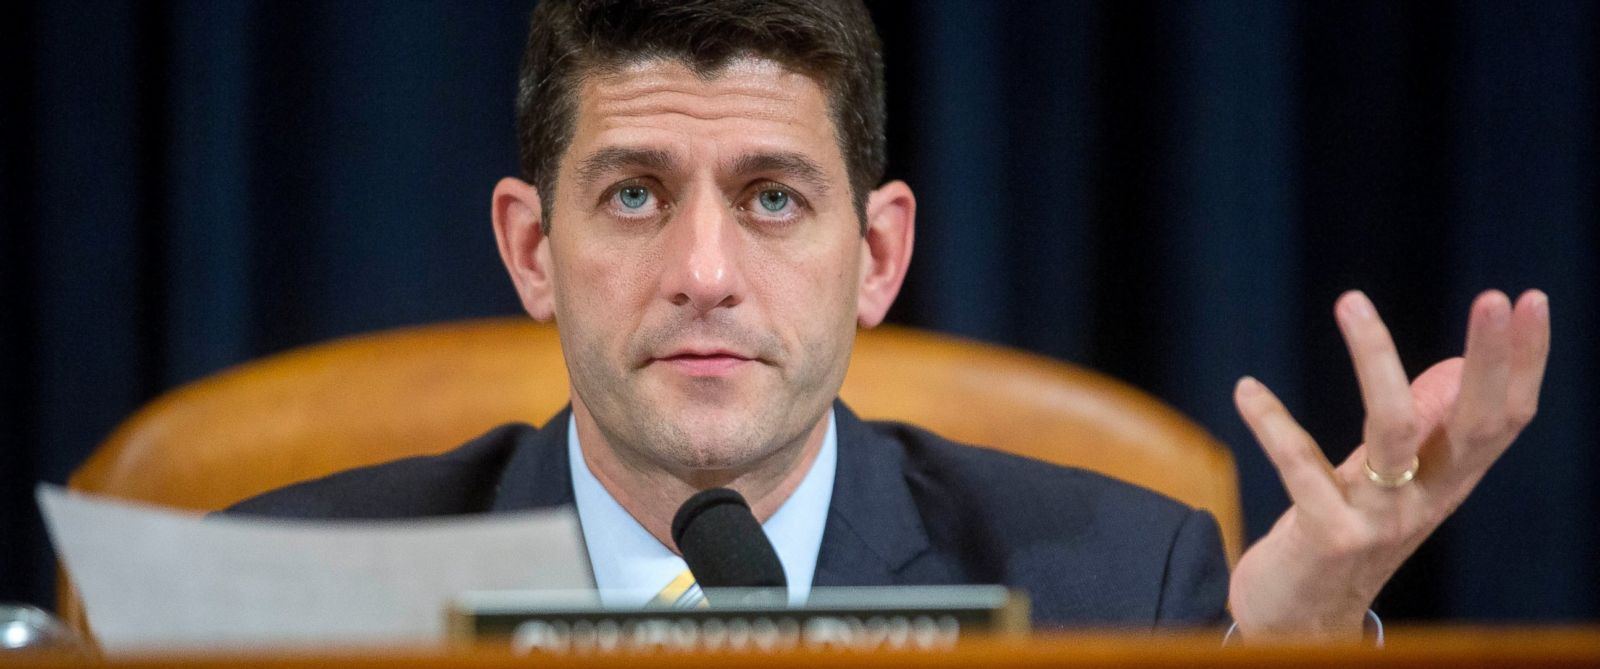 PHOTO: Representative Paul Ryan, a Republican from Wisconsin and chairman of the House Ways and Means Committee, questions witnesses during a House Ways and Means Committee hearing in Washington on July 17, 2015.